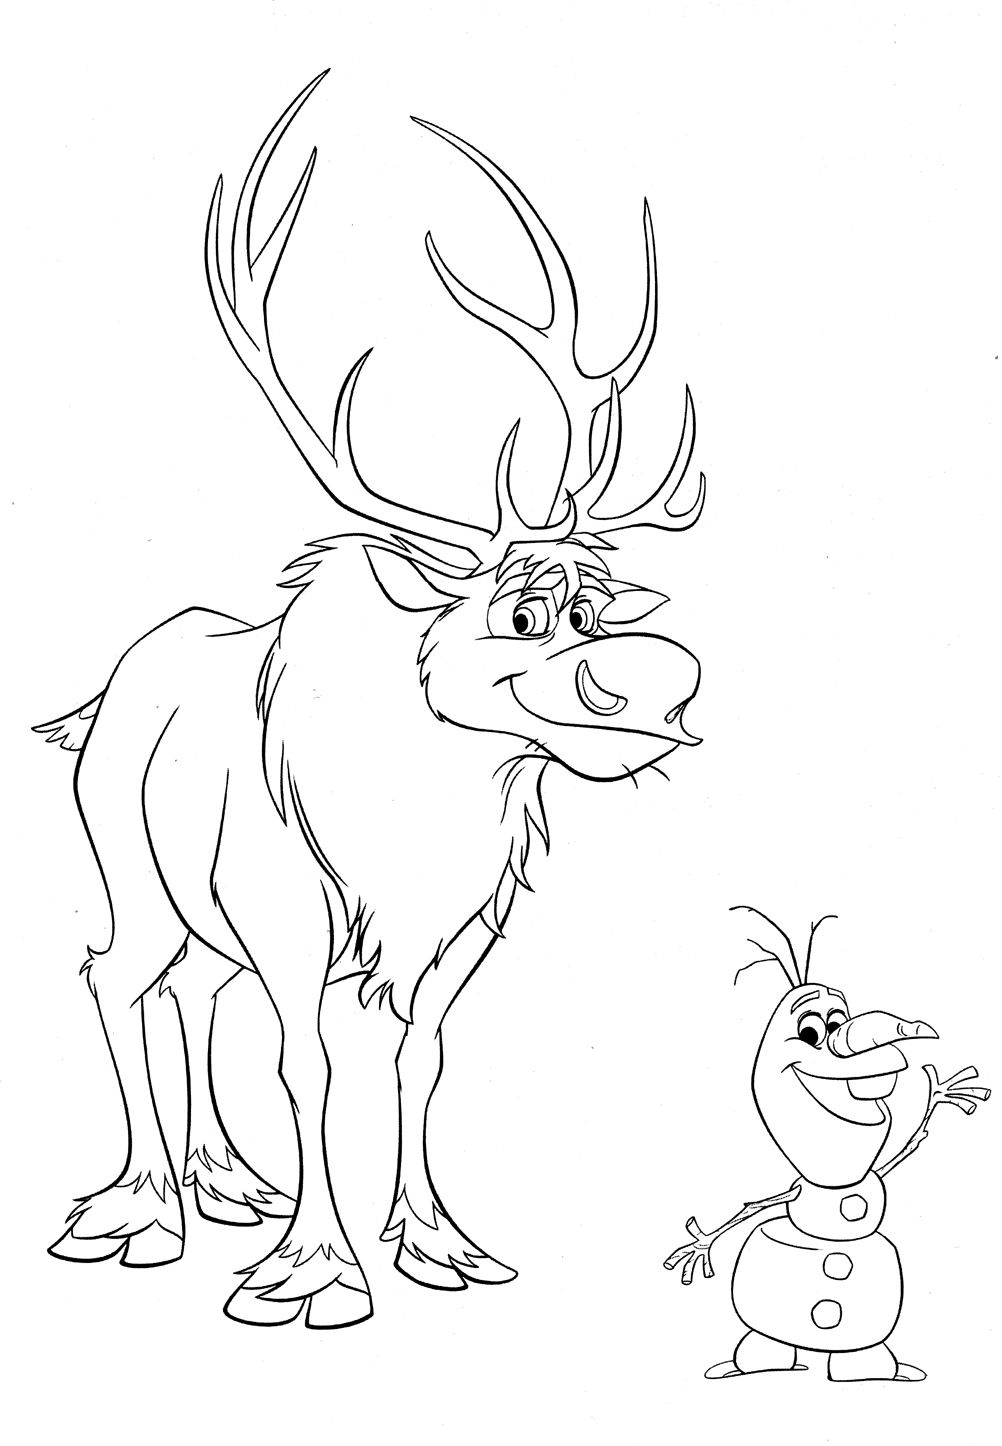 The Best Free Reine Coloring Page Images Download From 6 Free